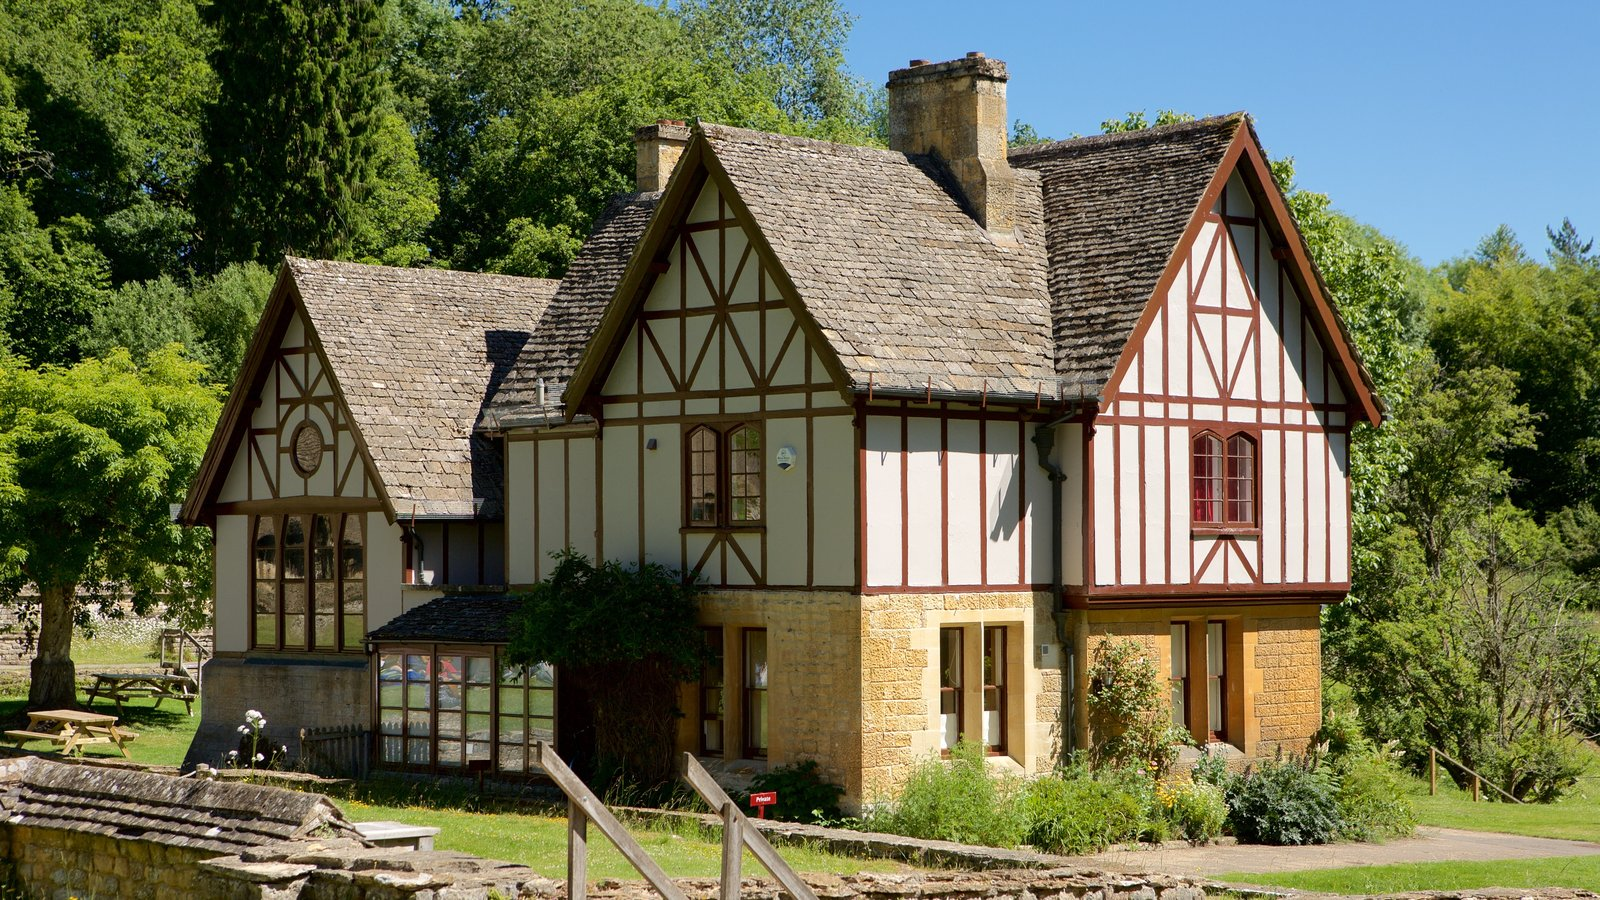 Museum Pictures: View Images of Chedworth Roman Villa